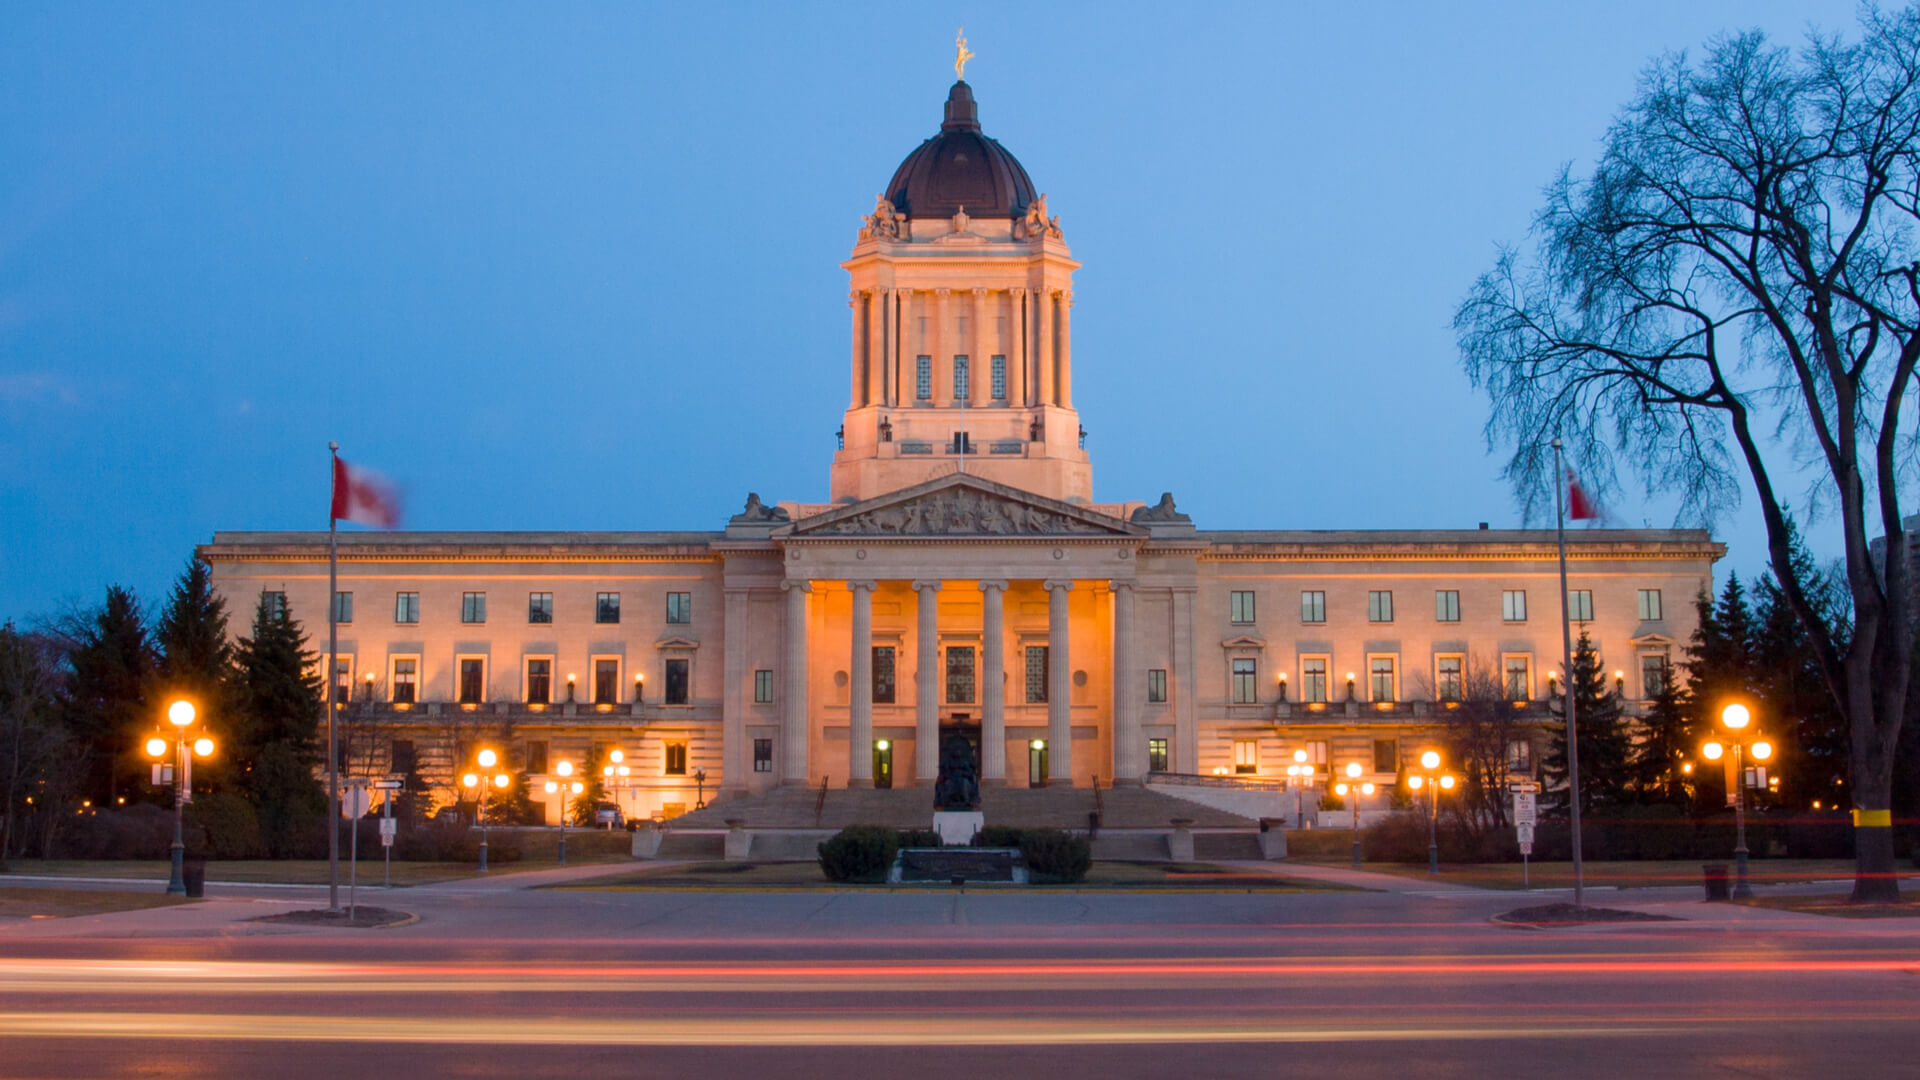 Manitoba Legislative Building at dusk in Winnipeg